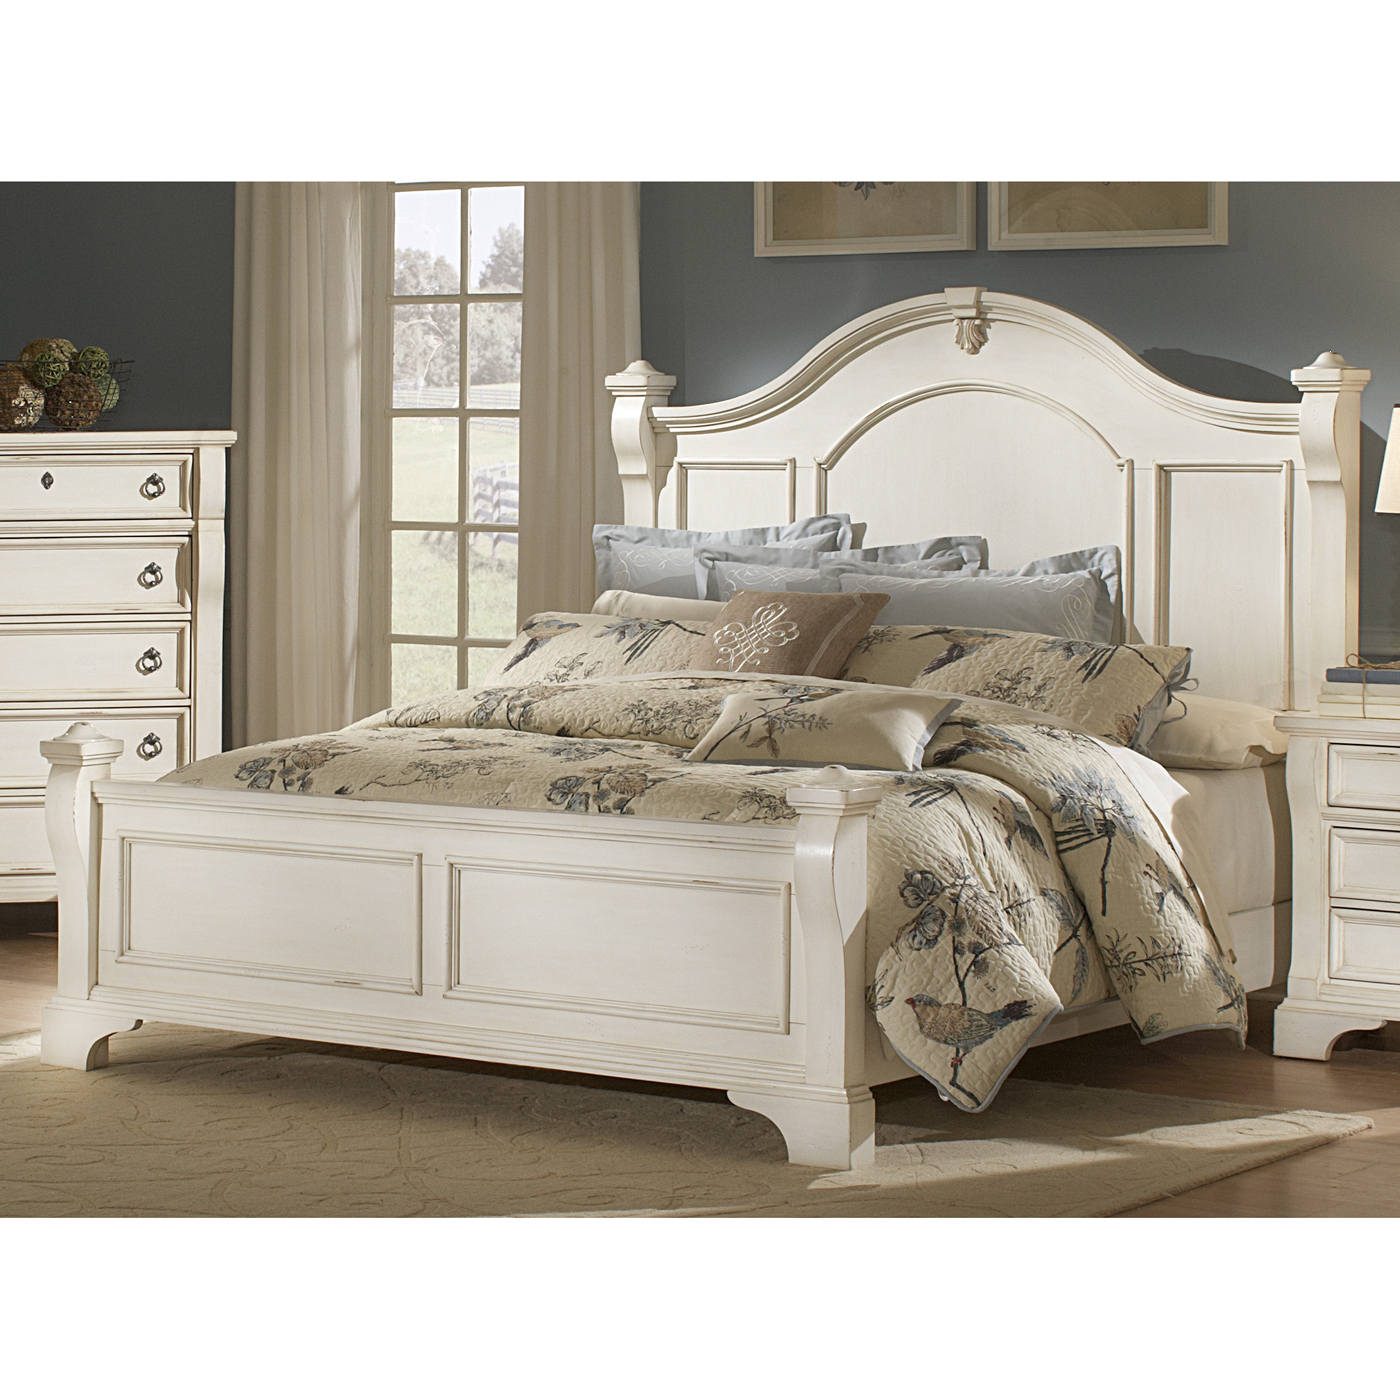 American Woodcrafters Heirloom Poster Bed by American Woodcrafters